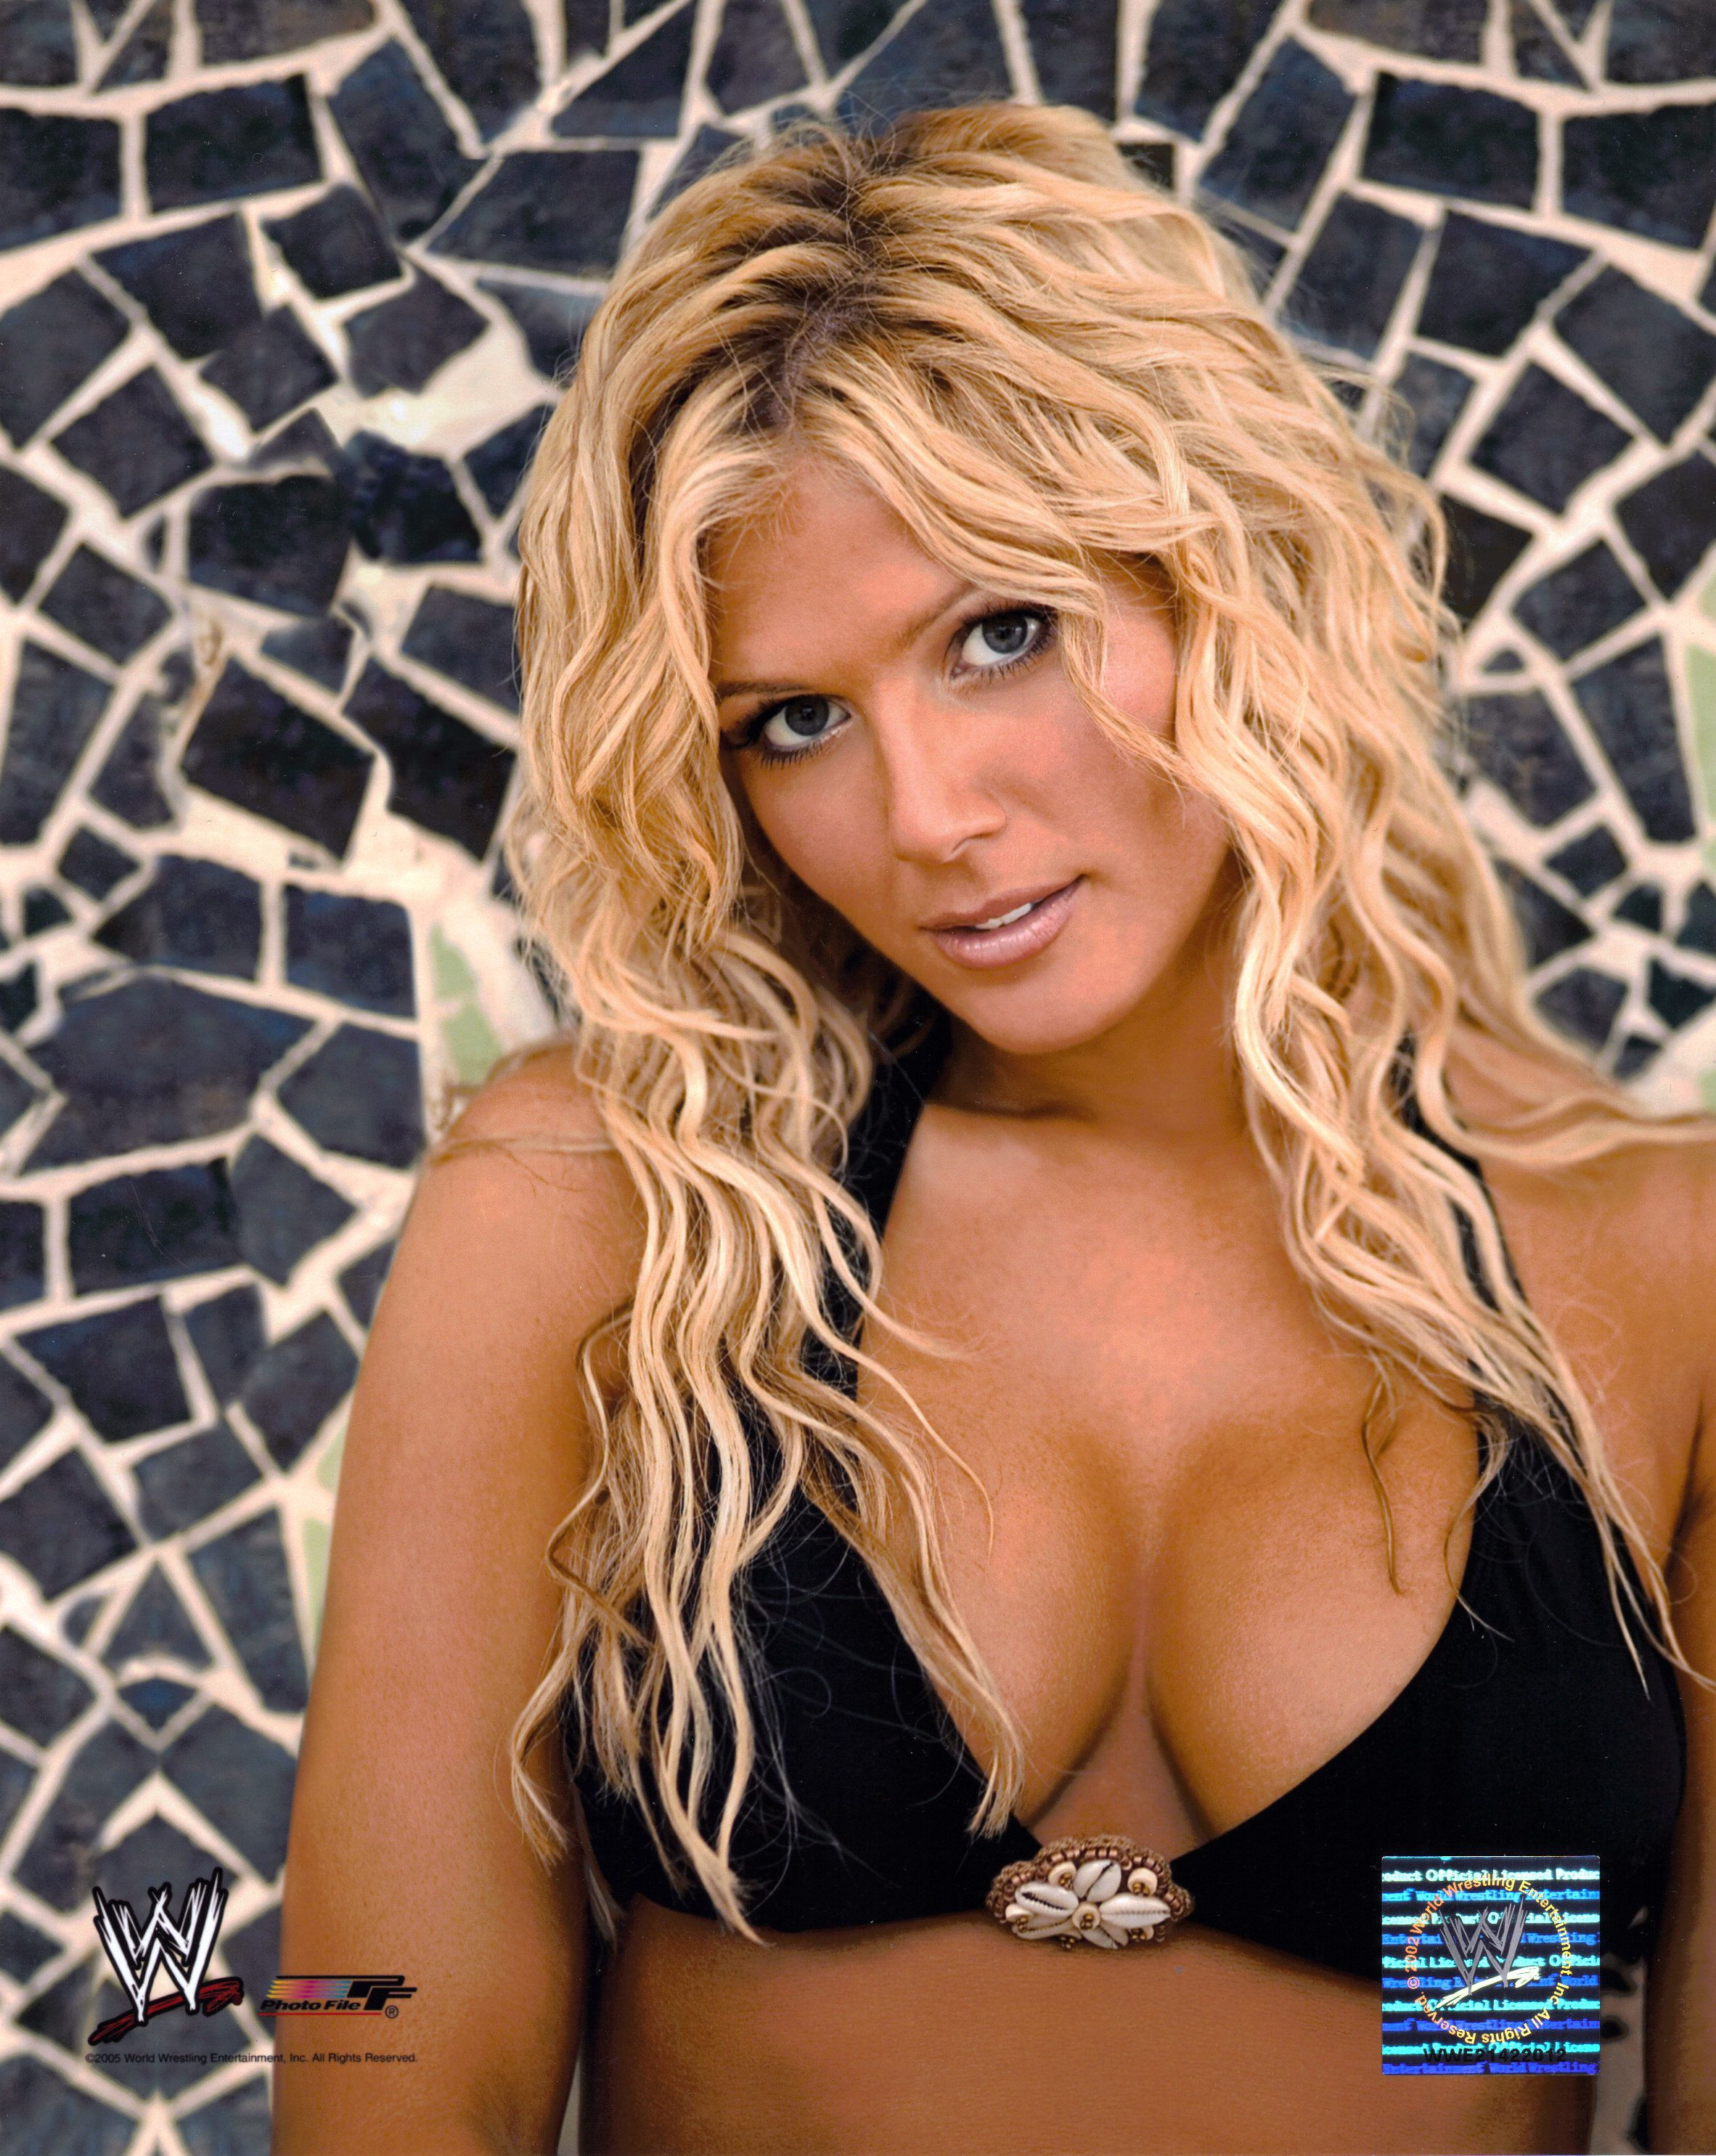 torrie wilson agetorrie wilson 2016, torrie wilson vs, torrie wilson wcw, torrie wilson fan, torrie wilson 2003, torrie wilson and kelly kelly, torrie wilson fan site, torrie wilson vs lita, torrie wilson imdb, torrie wilson bio, torrie wilson leather, torrie wilson twitter, torrie wilson marie, torrie wilson vs trish, torrie wilson 2015, torrie wilson age, torrie wilson now, torrie wilson cagematch, torrie wilson youtube channel, torrie wilson interview